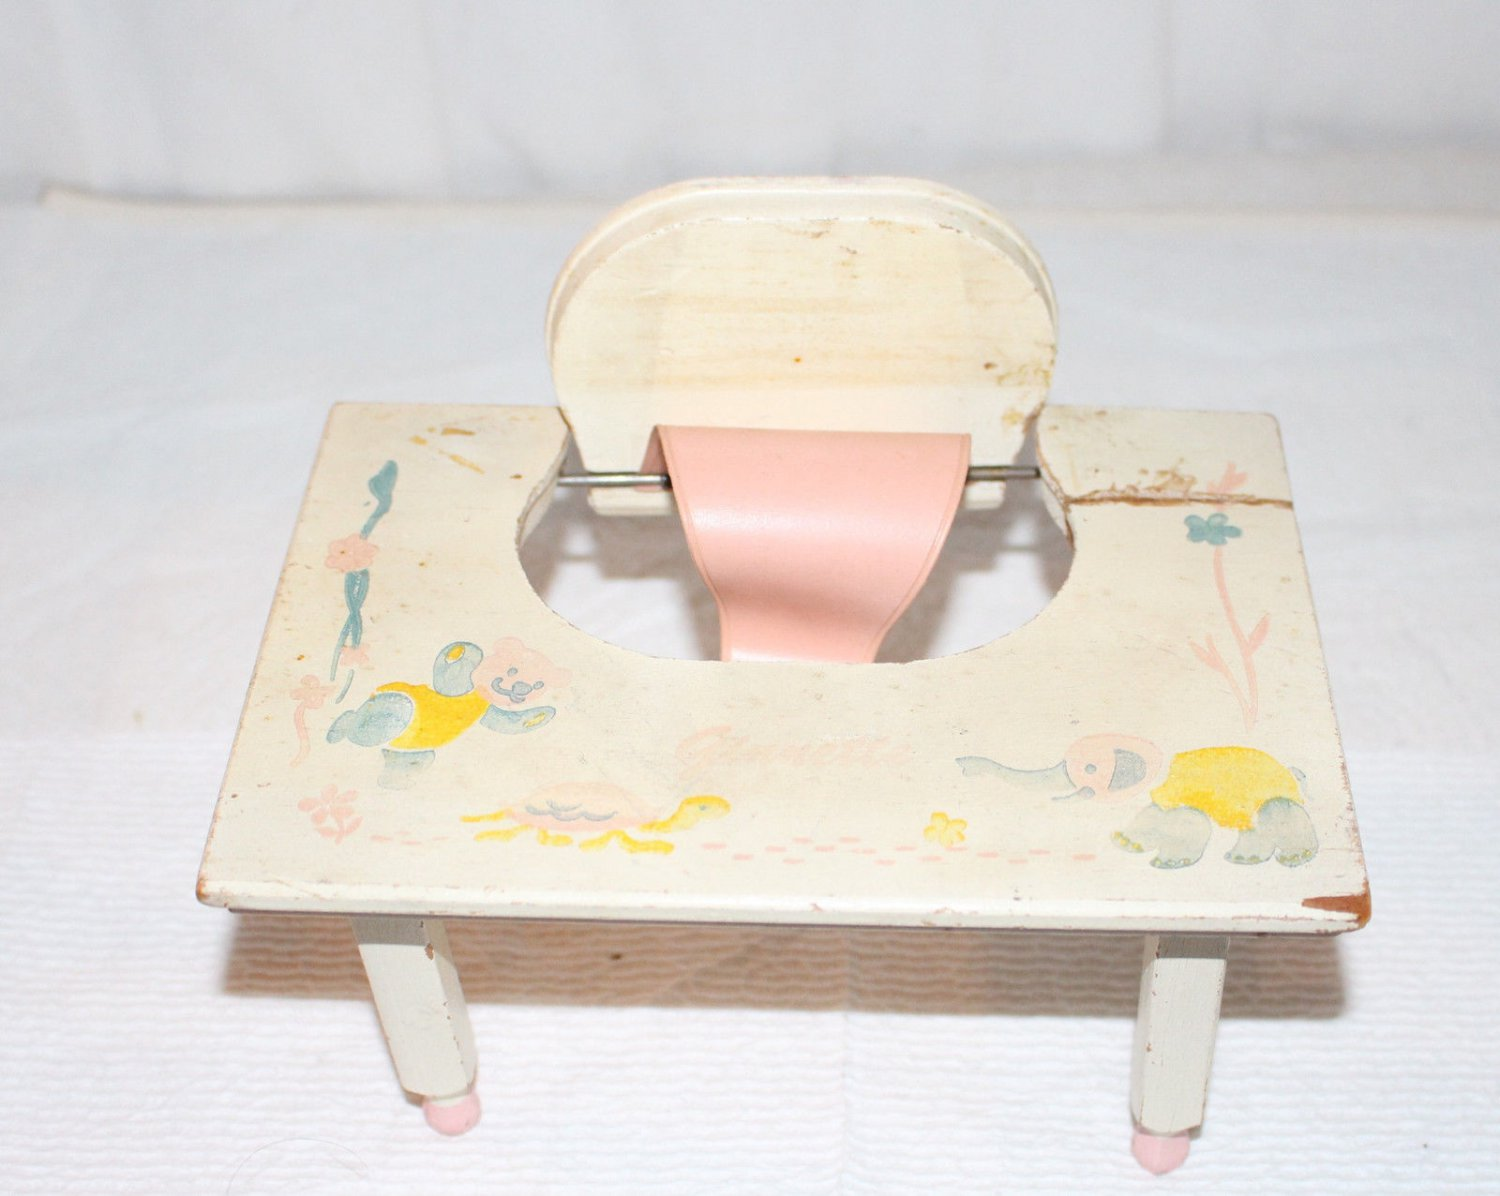 VINTAGE GINNETTE WOODEN SEAT LOW TABLE WITH VINYL SEAT PAINTED BLUE